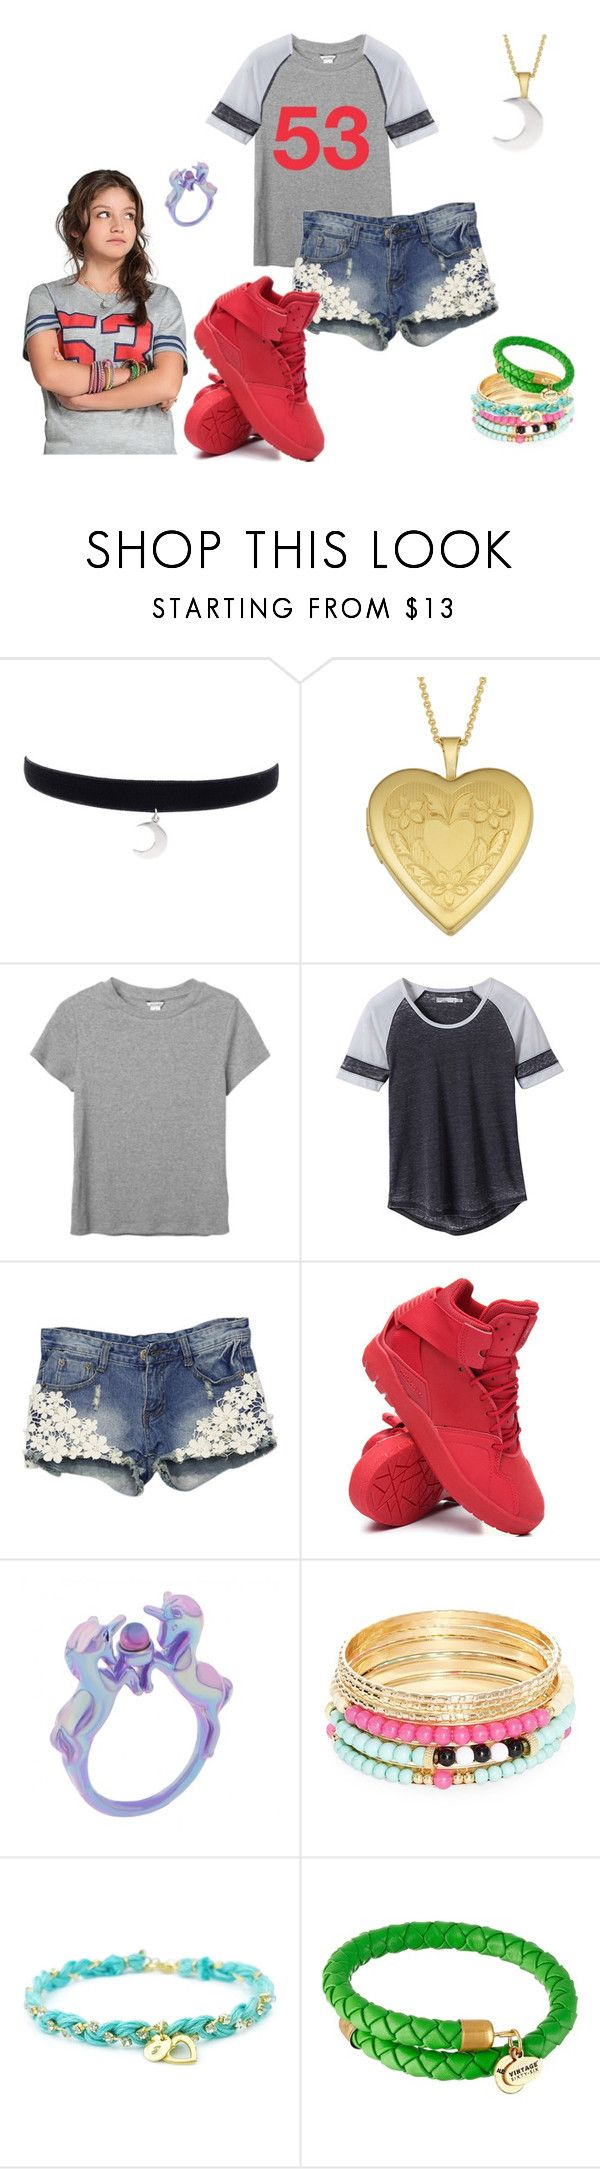 """soy luna"" by maria-look on Polyvore featuring Fremada, Monki, prAna, adidas, Robert Rose and Alex and Ani"